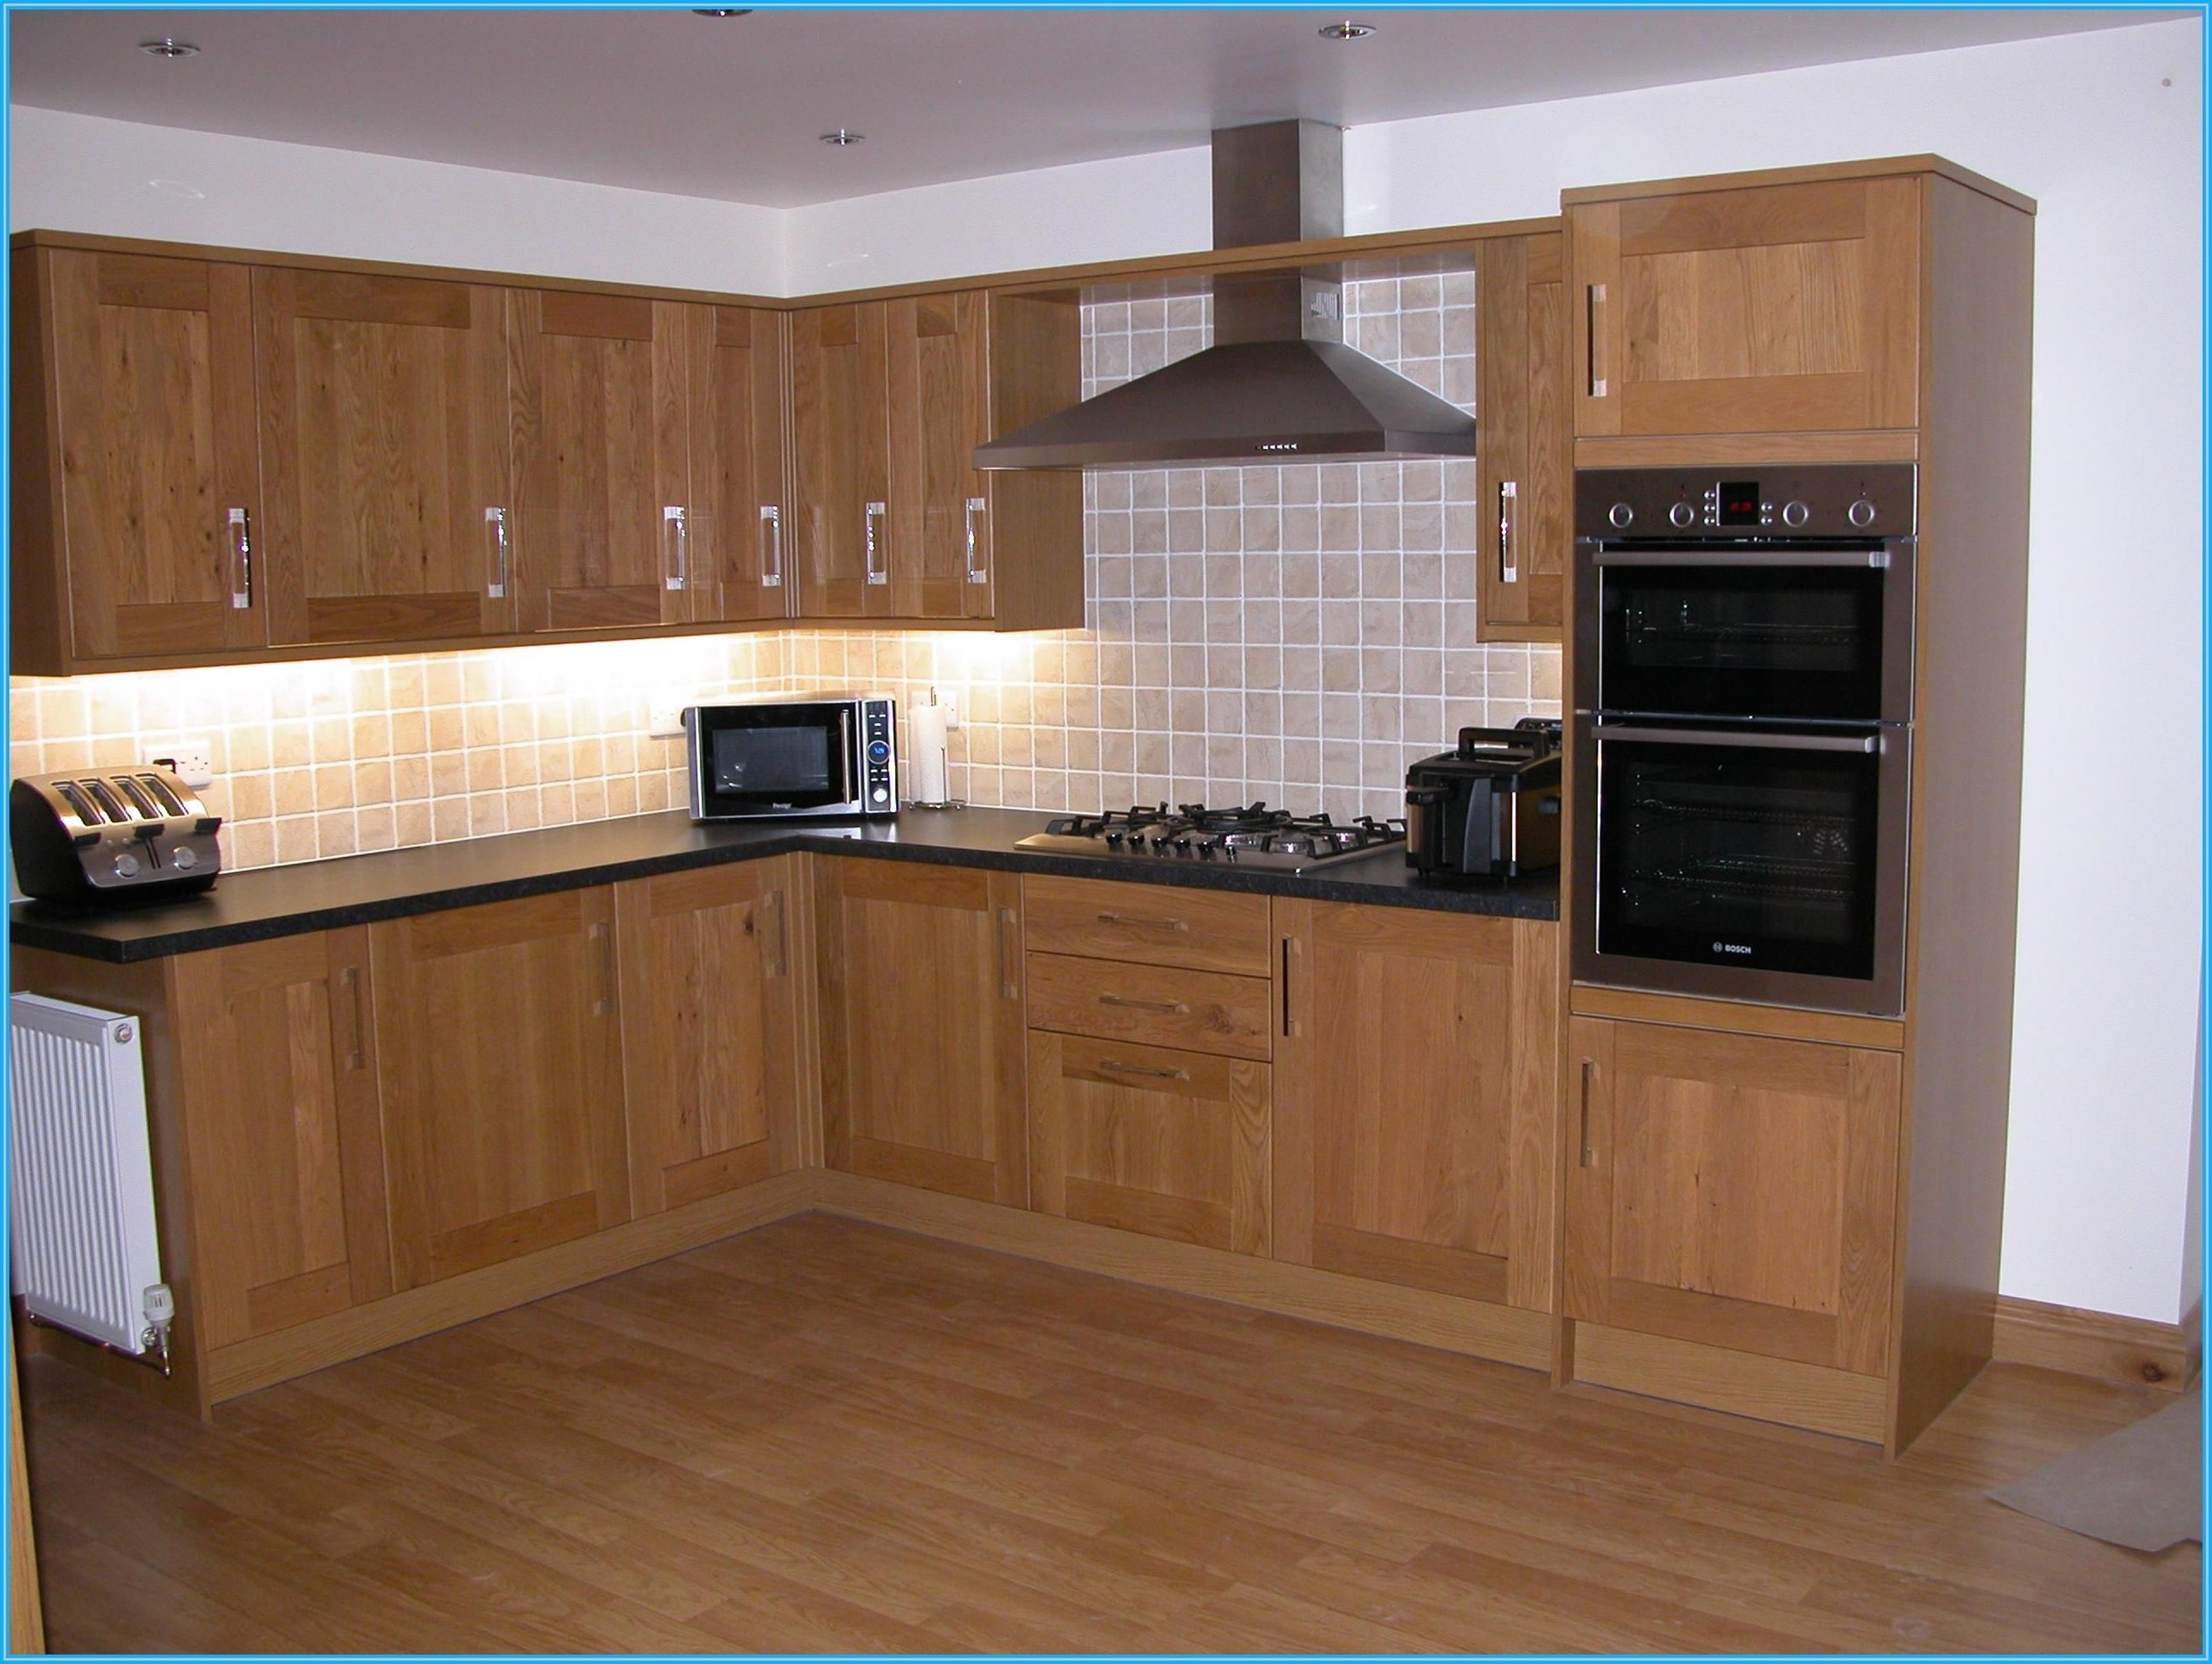 High Quality Conestoga Doors To Fit Every Kitchen And Bathroom Need 9 Kitchen Cabinet Doors Replacing Kitchen Cabinets New Kitchen Cabinets